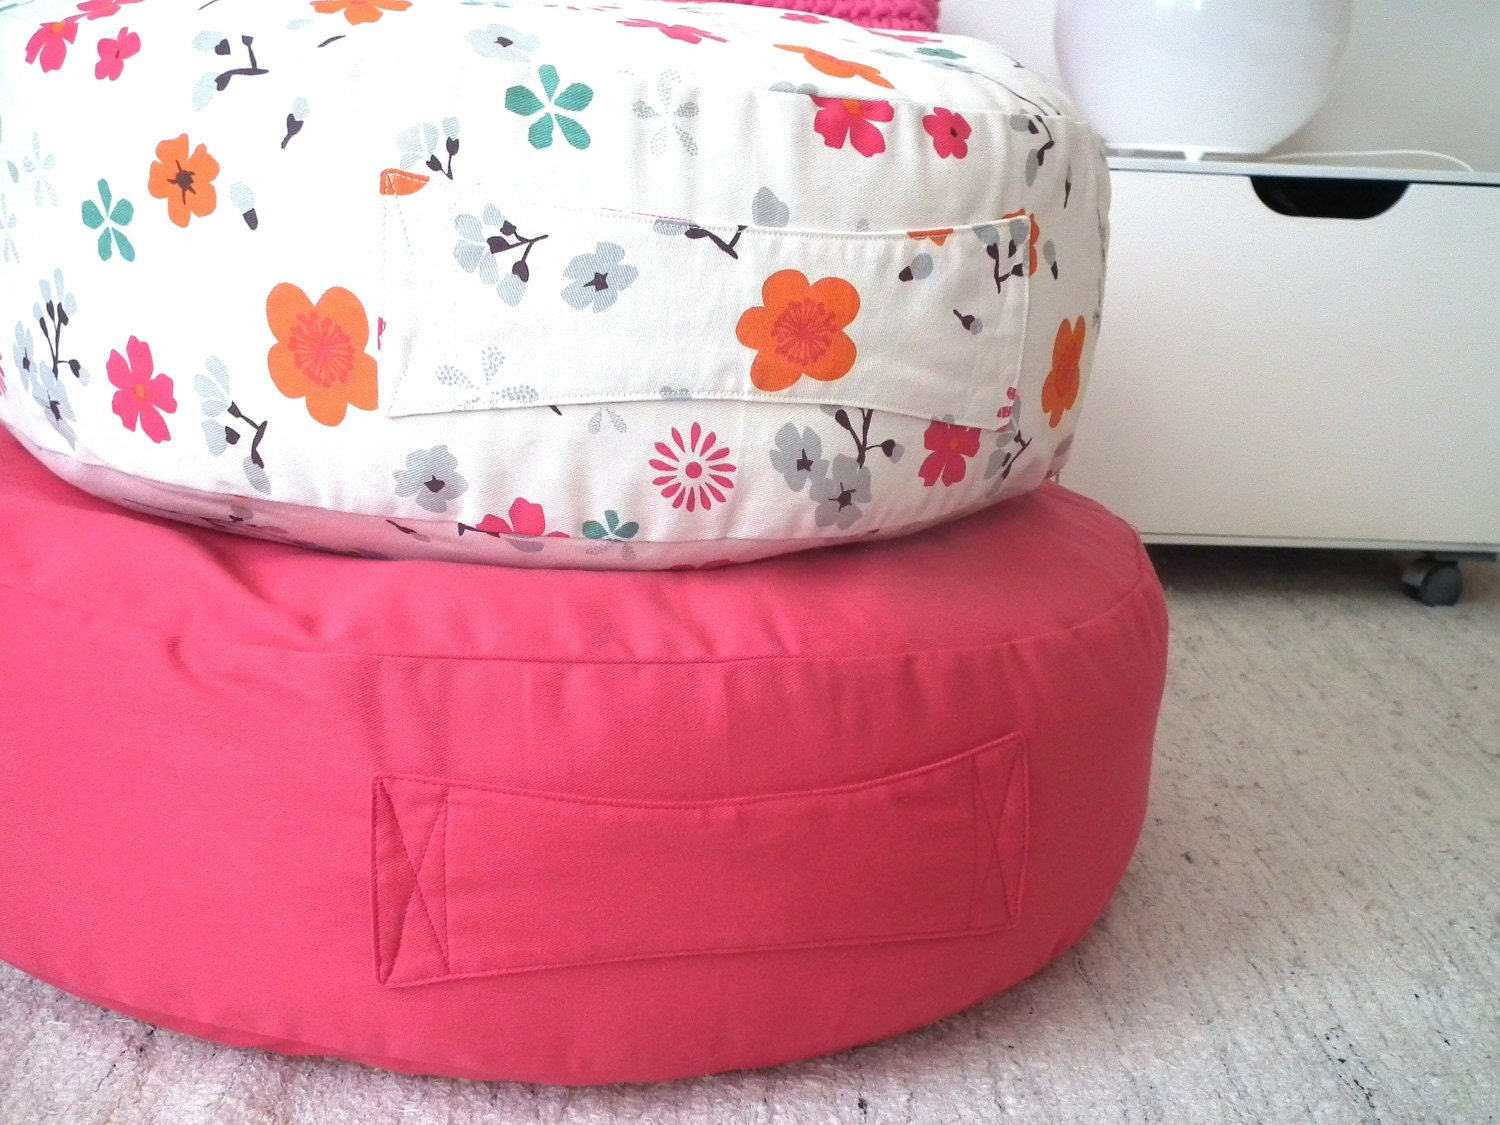 Big Round Floor Cushions : Big Pink Round Floor Cushion Ottoman Pouf Vibrante by LoopingHome